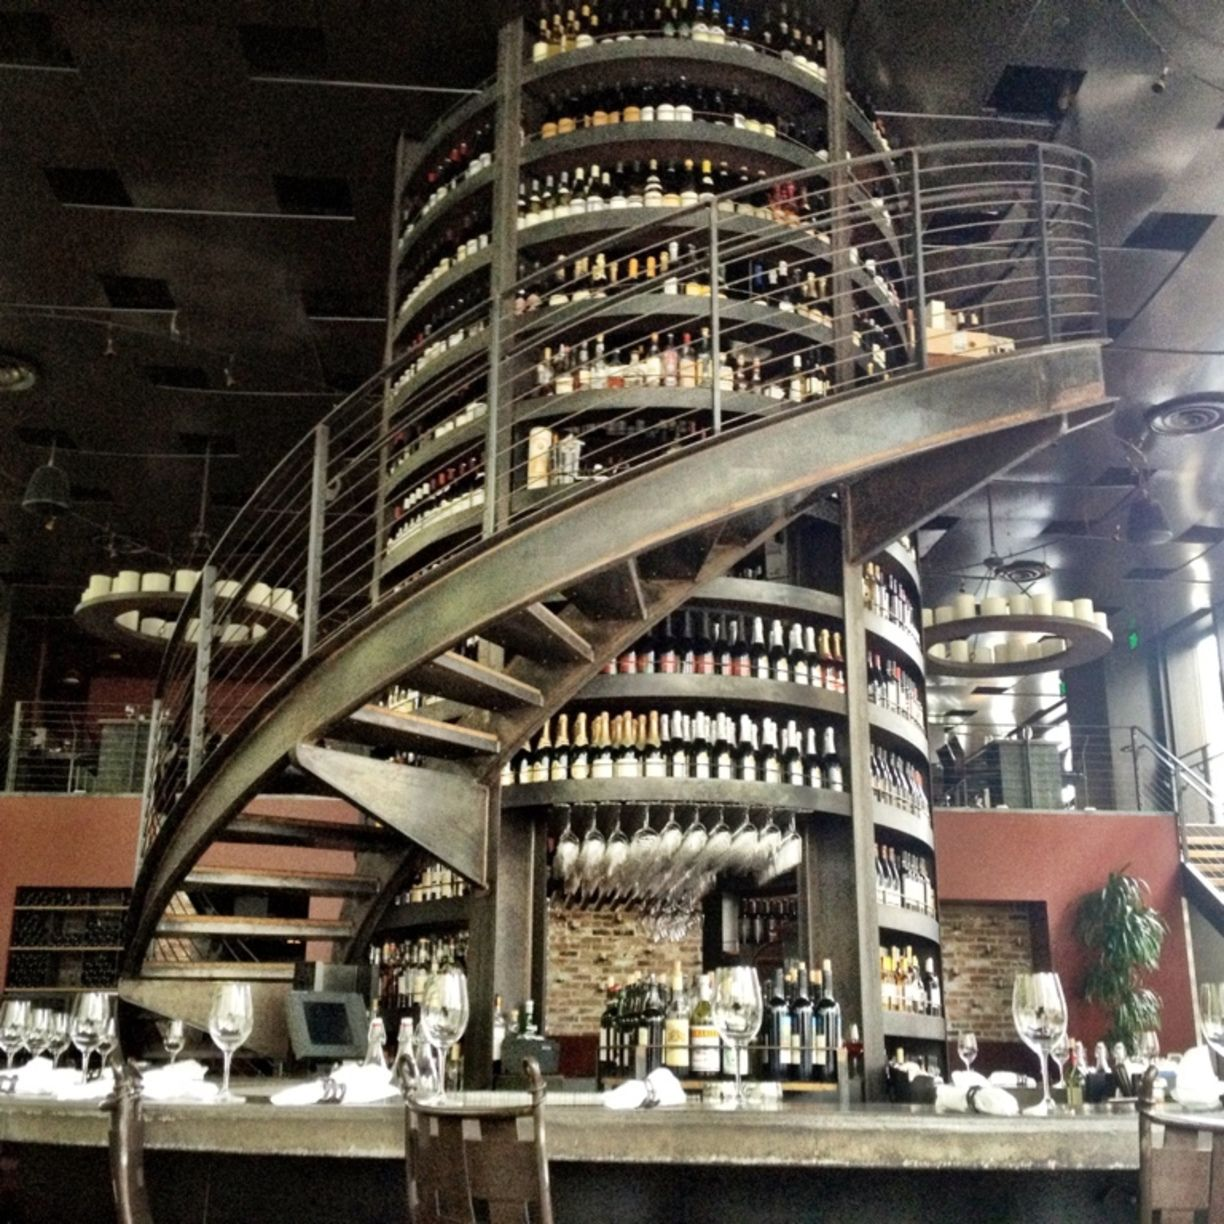 Astonishing Design Of The Purple Cafe At Seattle Withhuge Storage For So Many Wine In The World